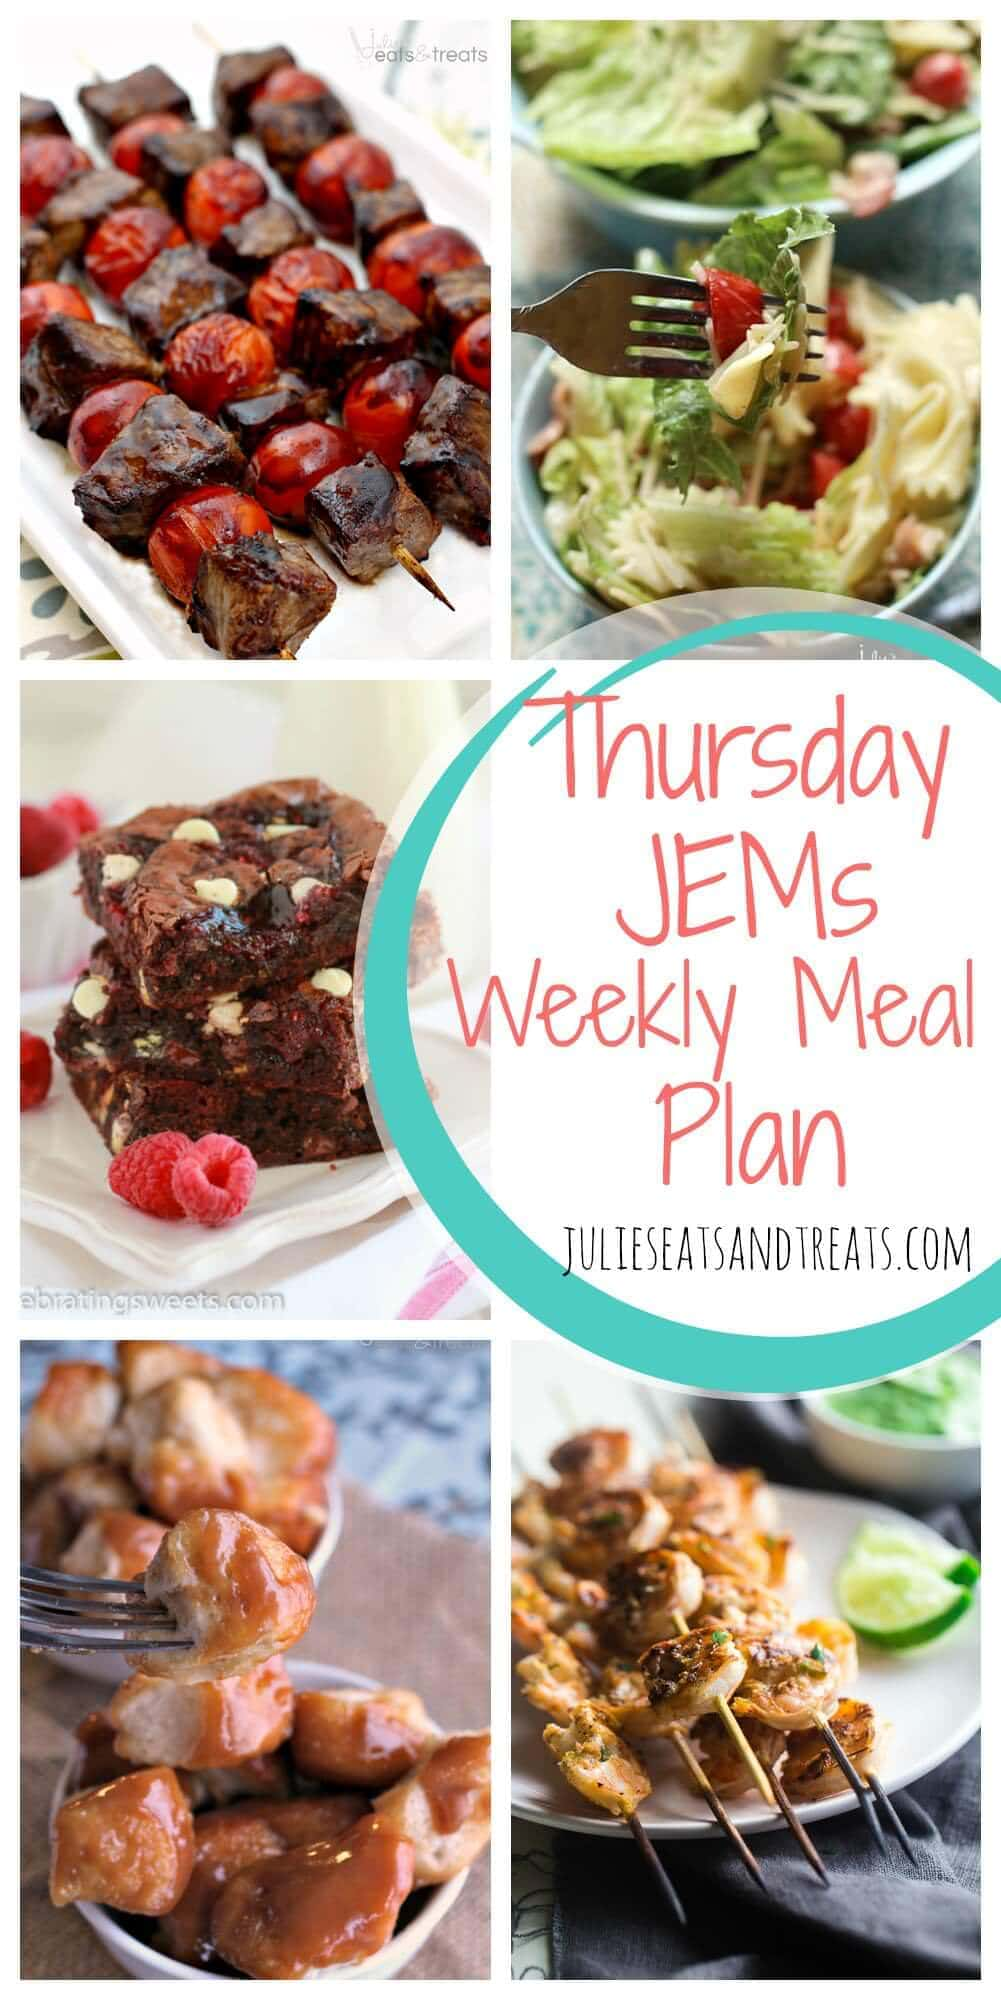 Simple every day meals for the busy family! Simple, Easy & Delicious Recipes!